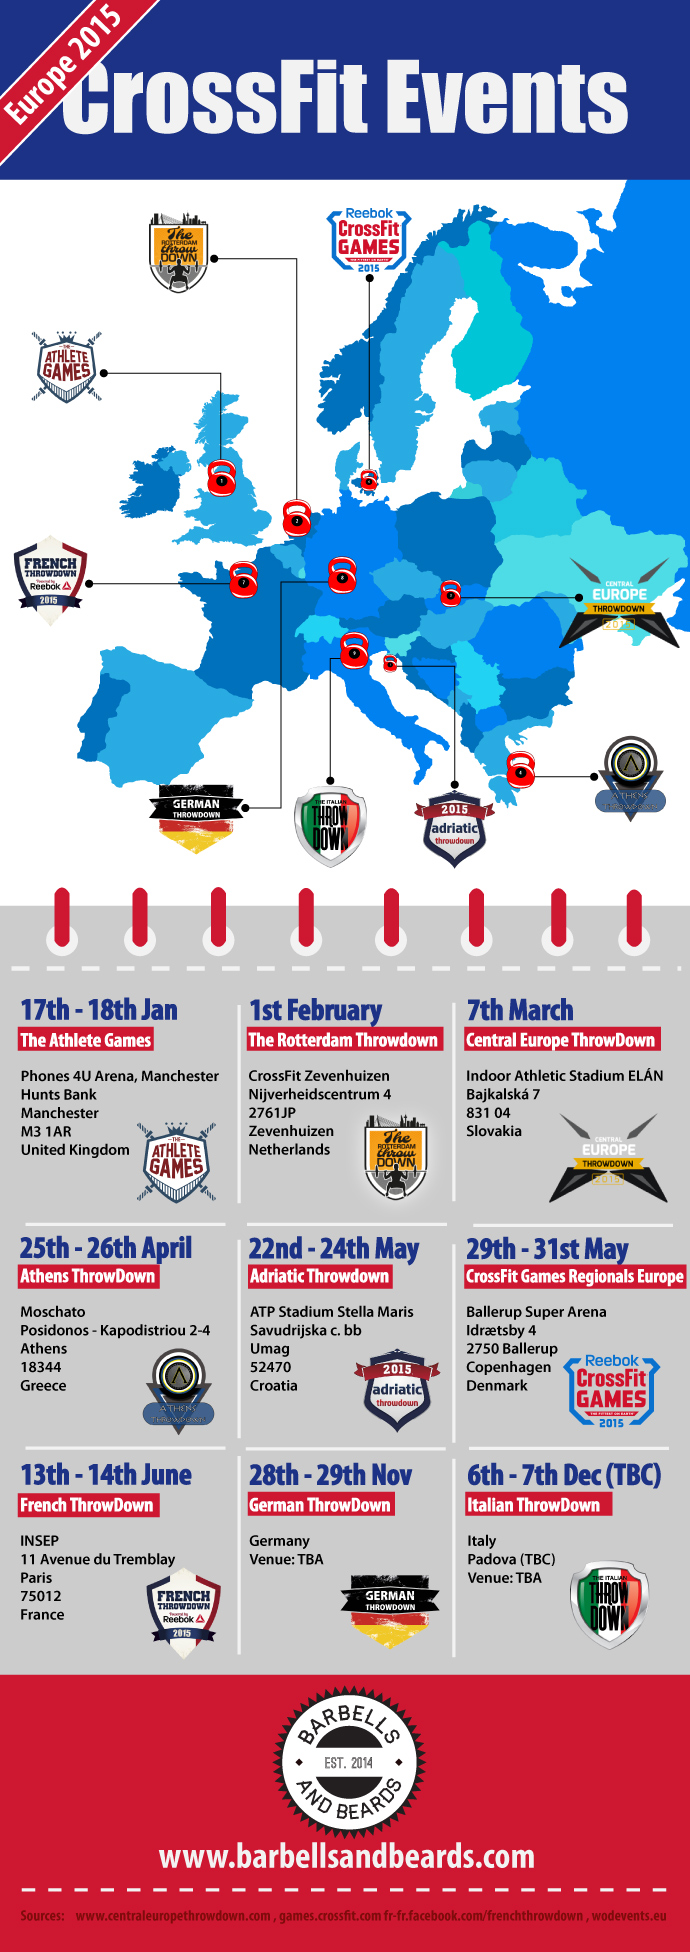 Crossfit Competitions Europe 2015 Infographic